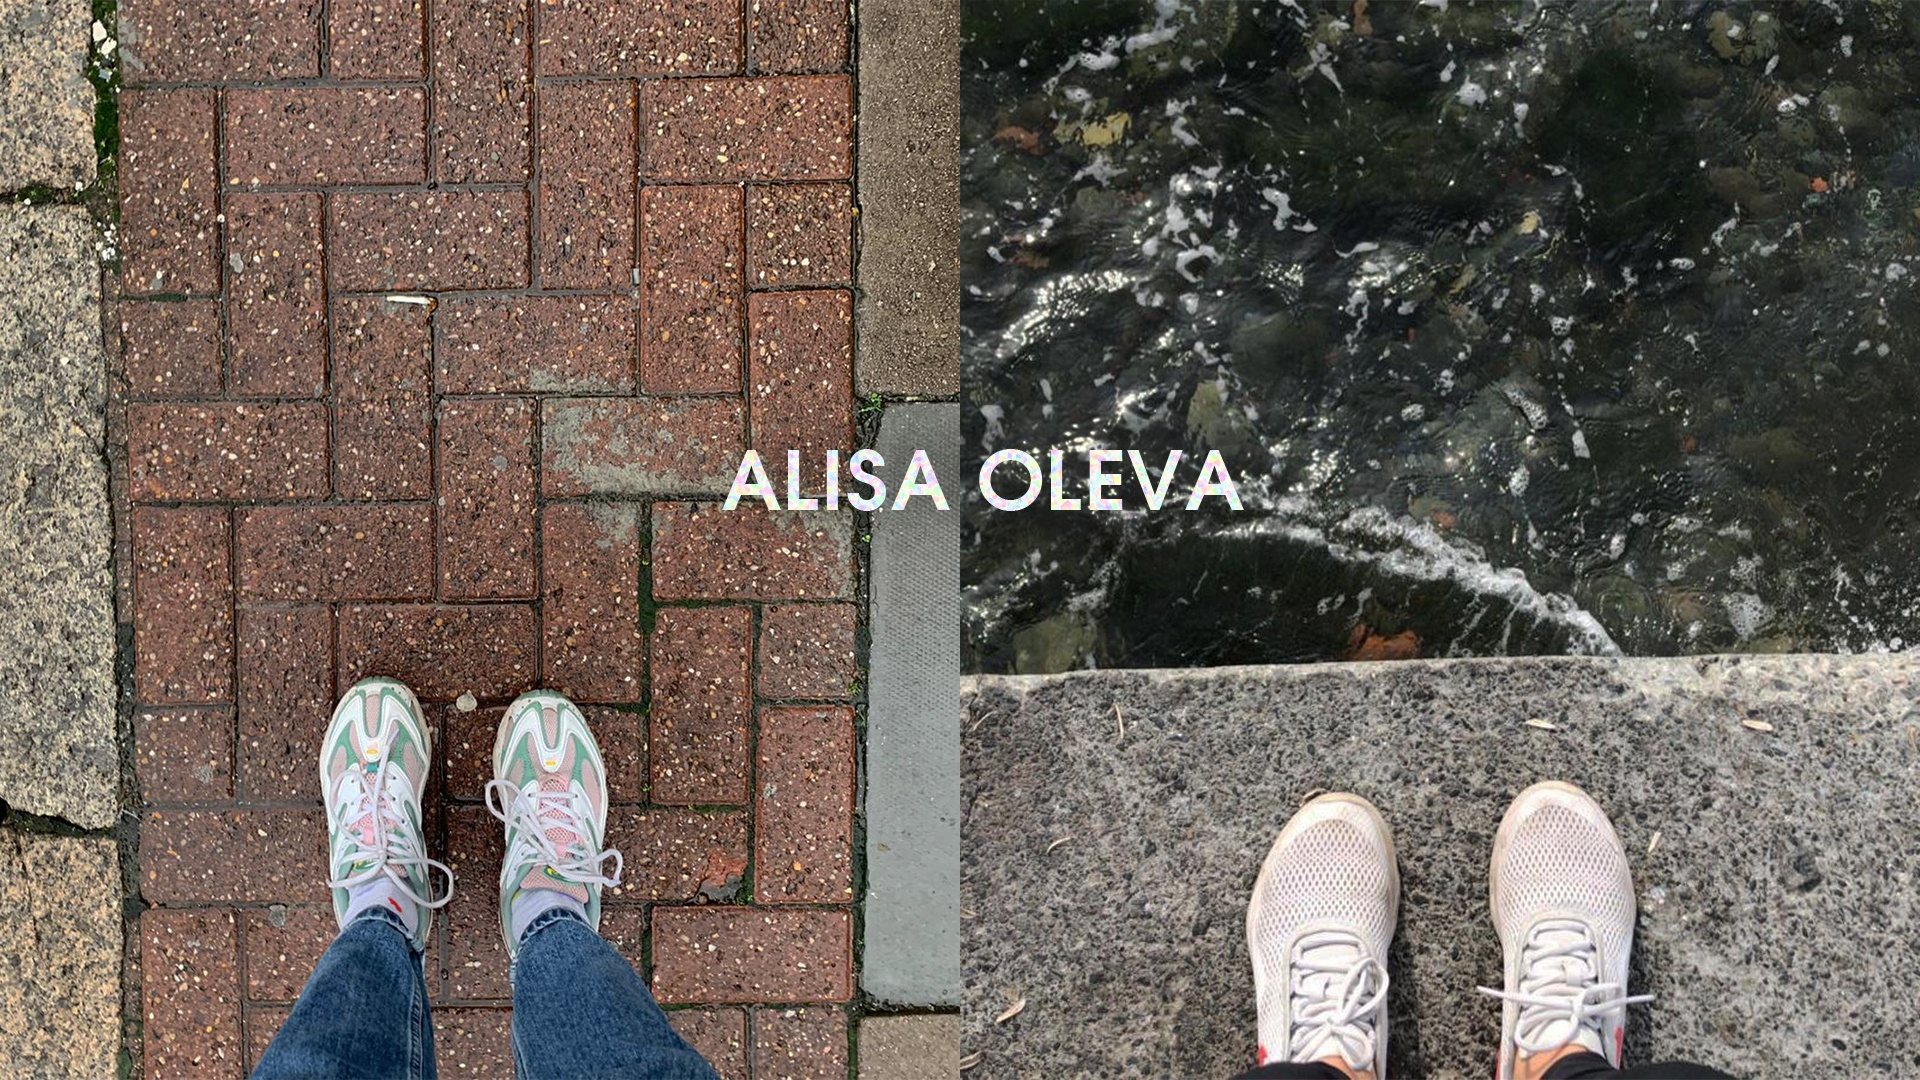 Two pictures of peoples shoes, on the left they are standing on the pavement, the shoes on the right are on concrete by the edge of water.